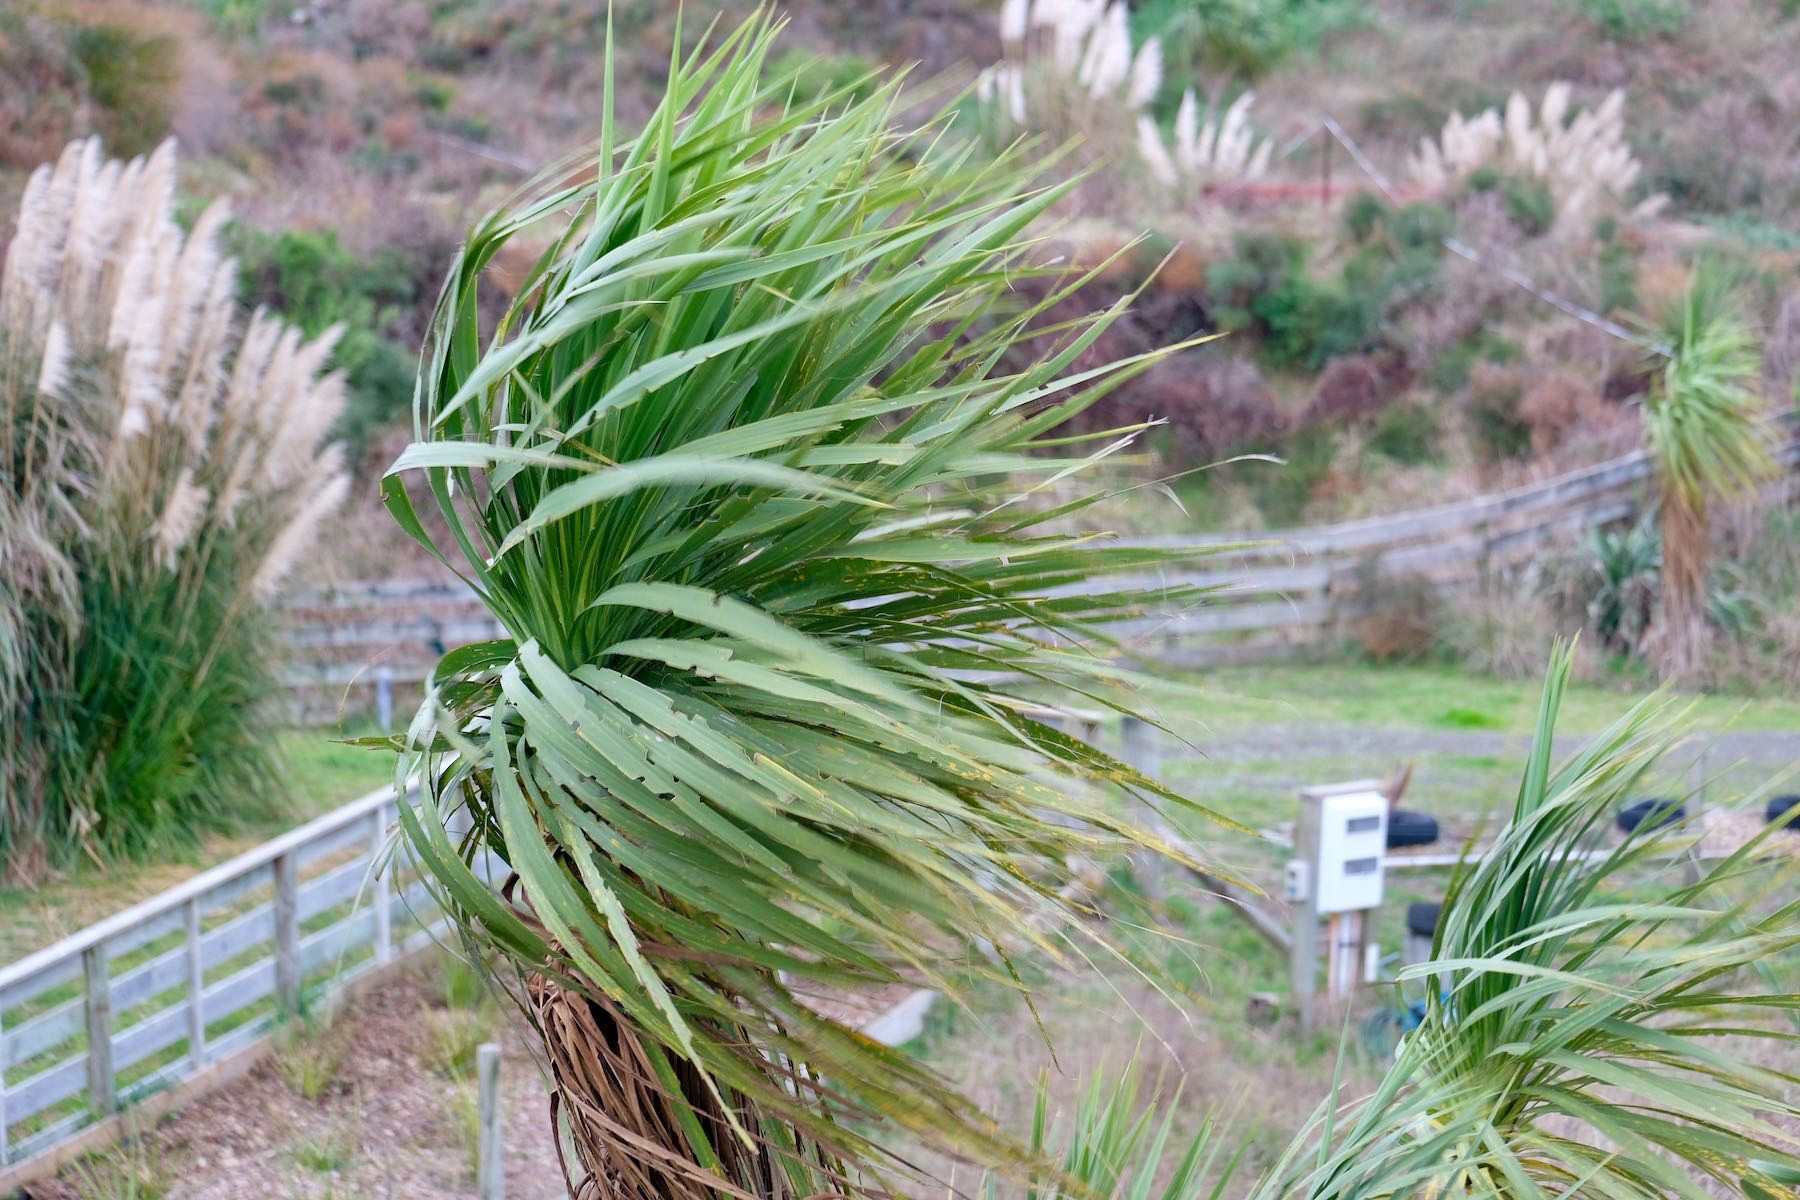 Cabbage tree leaves blowing in the wind.